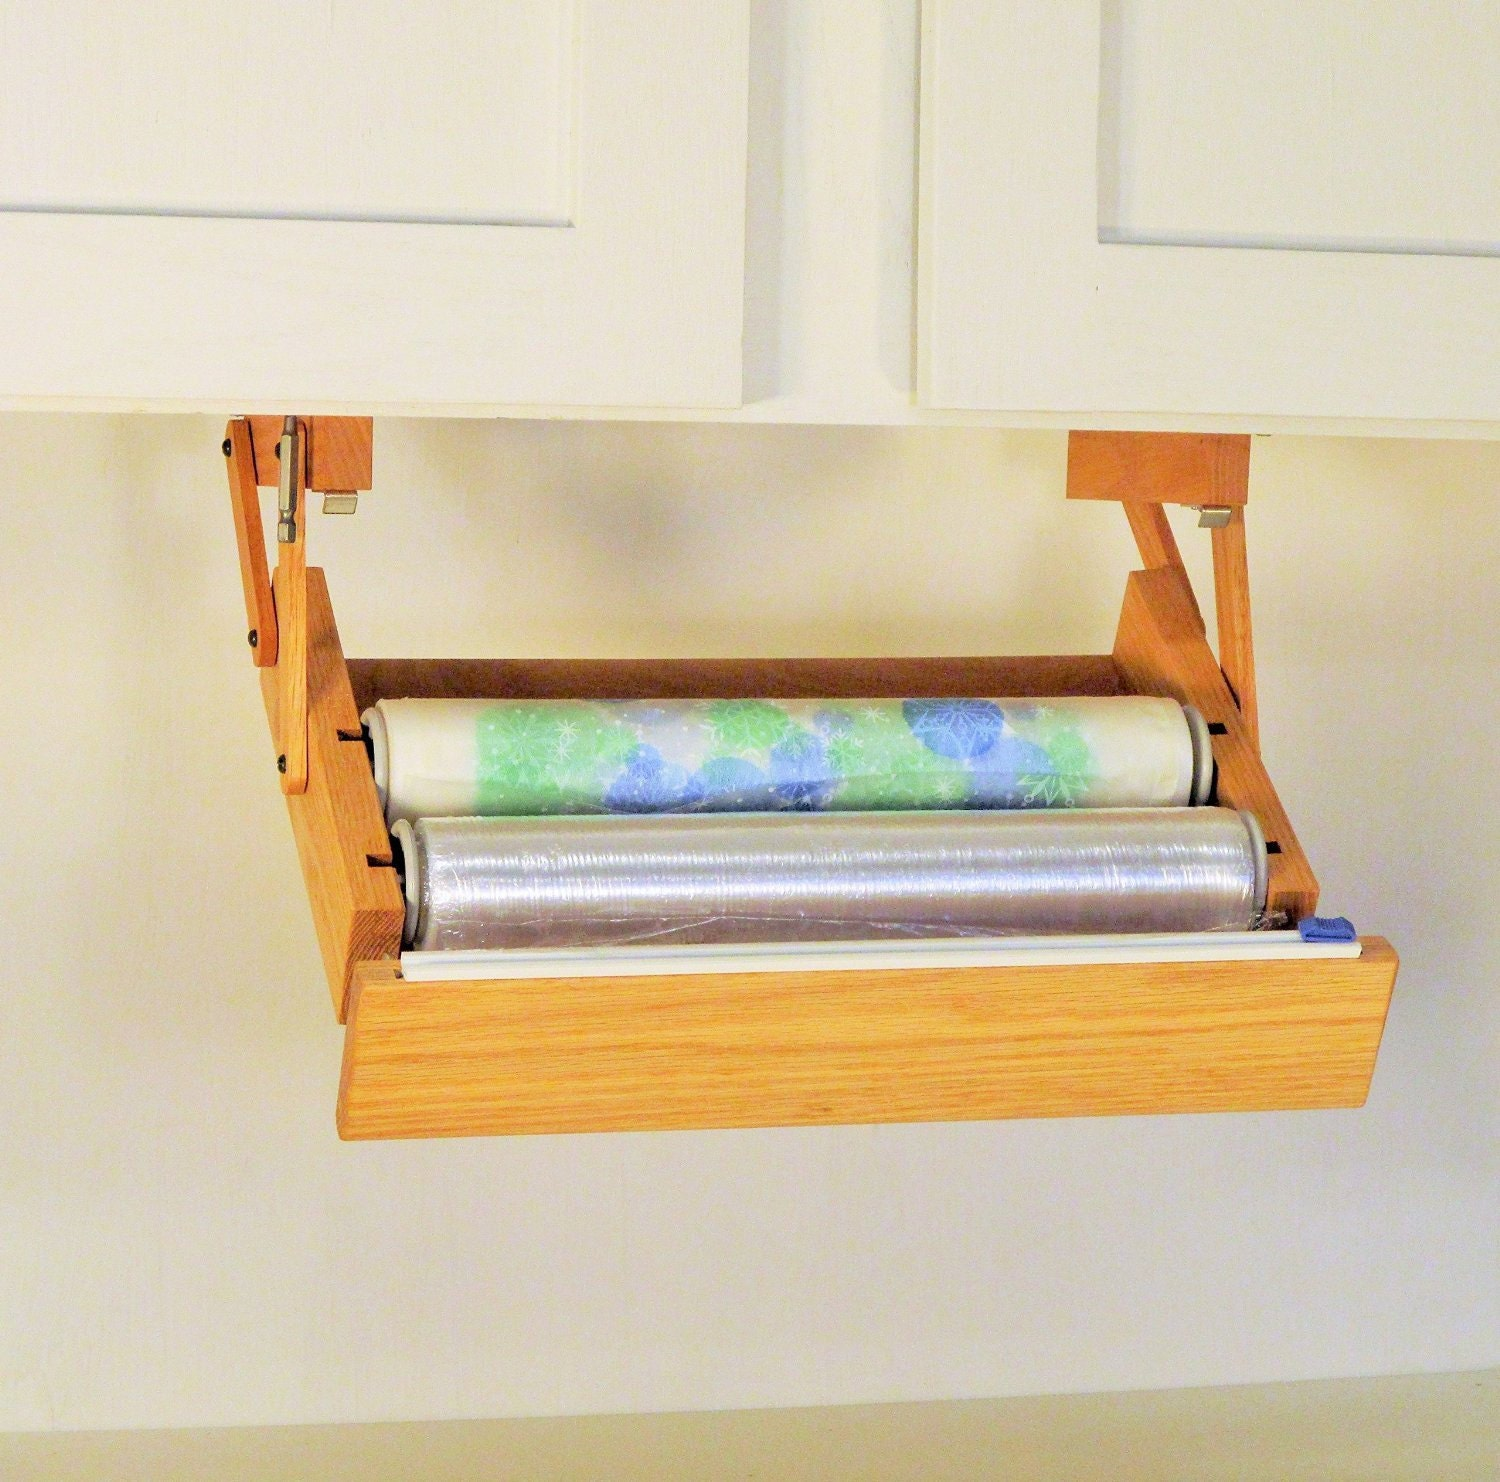 Ultimate storage under cabinet cling wrap by Diy under counter storage